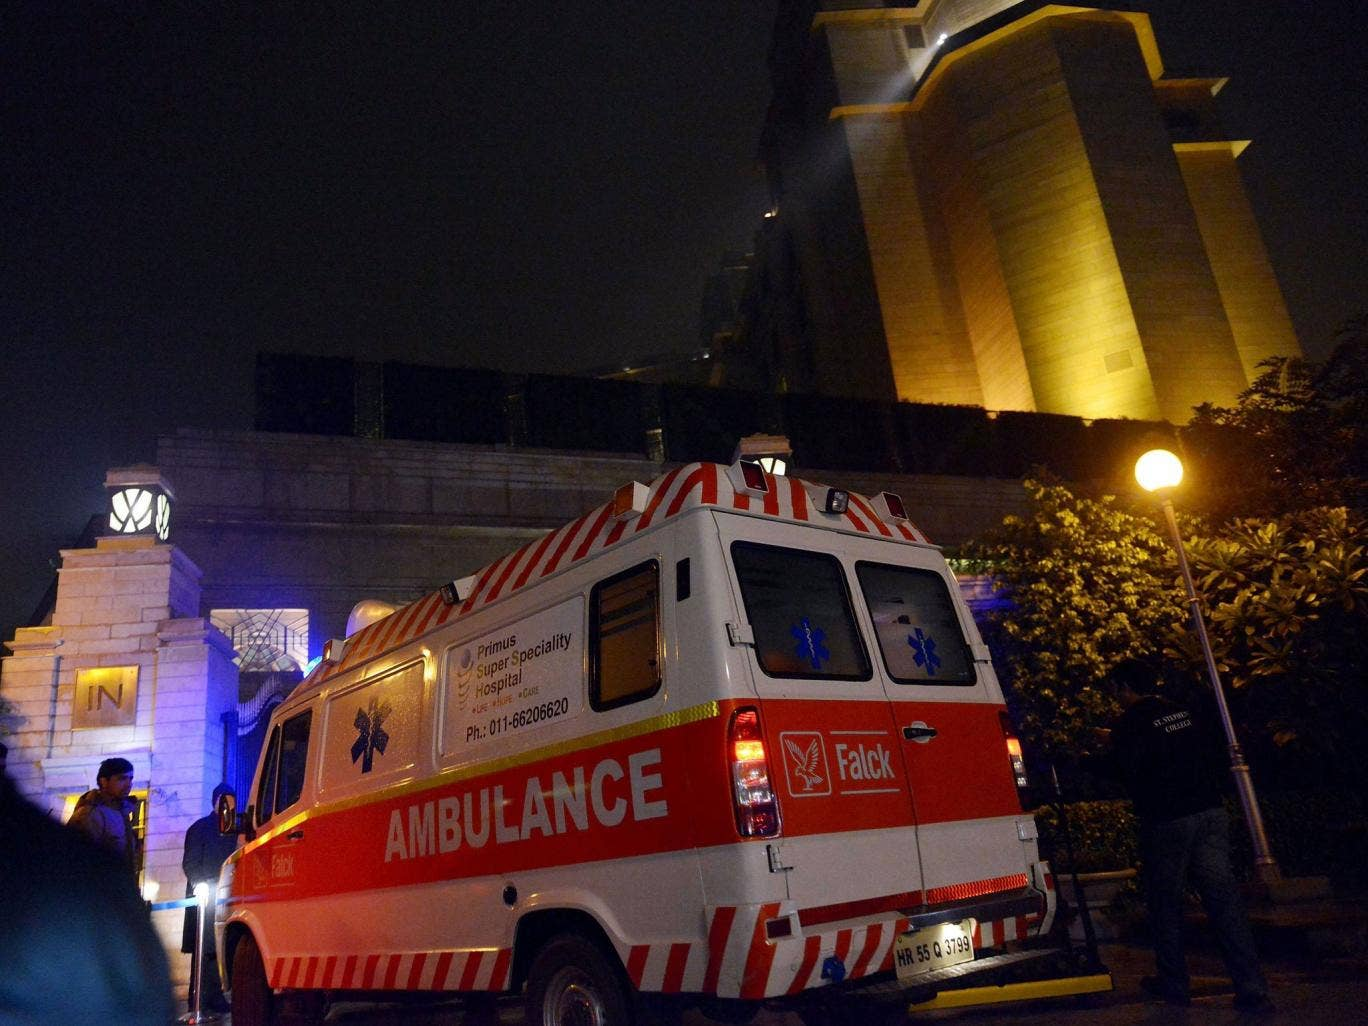 An ambulance arrives at the Leela Hotel in New Delhi where wife of Indian minister Shashi Tharoor, Sunanda Pushkar was found dead